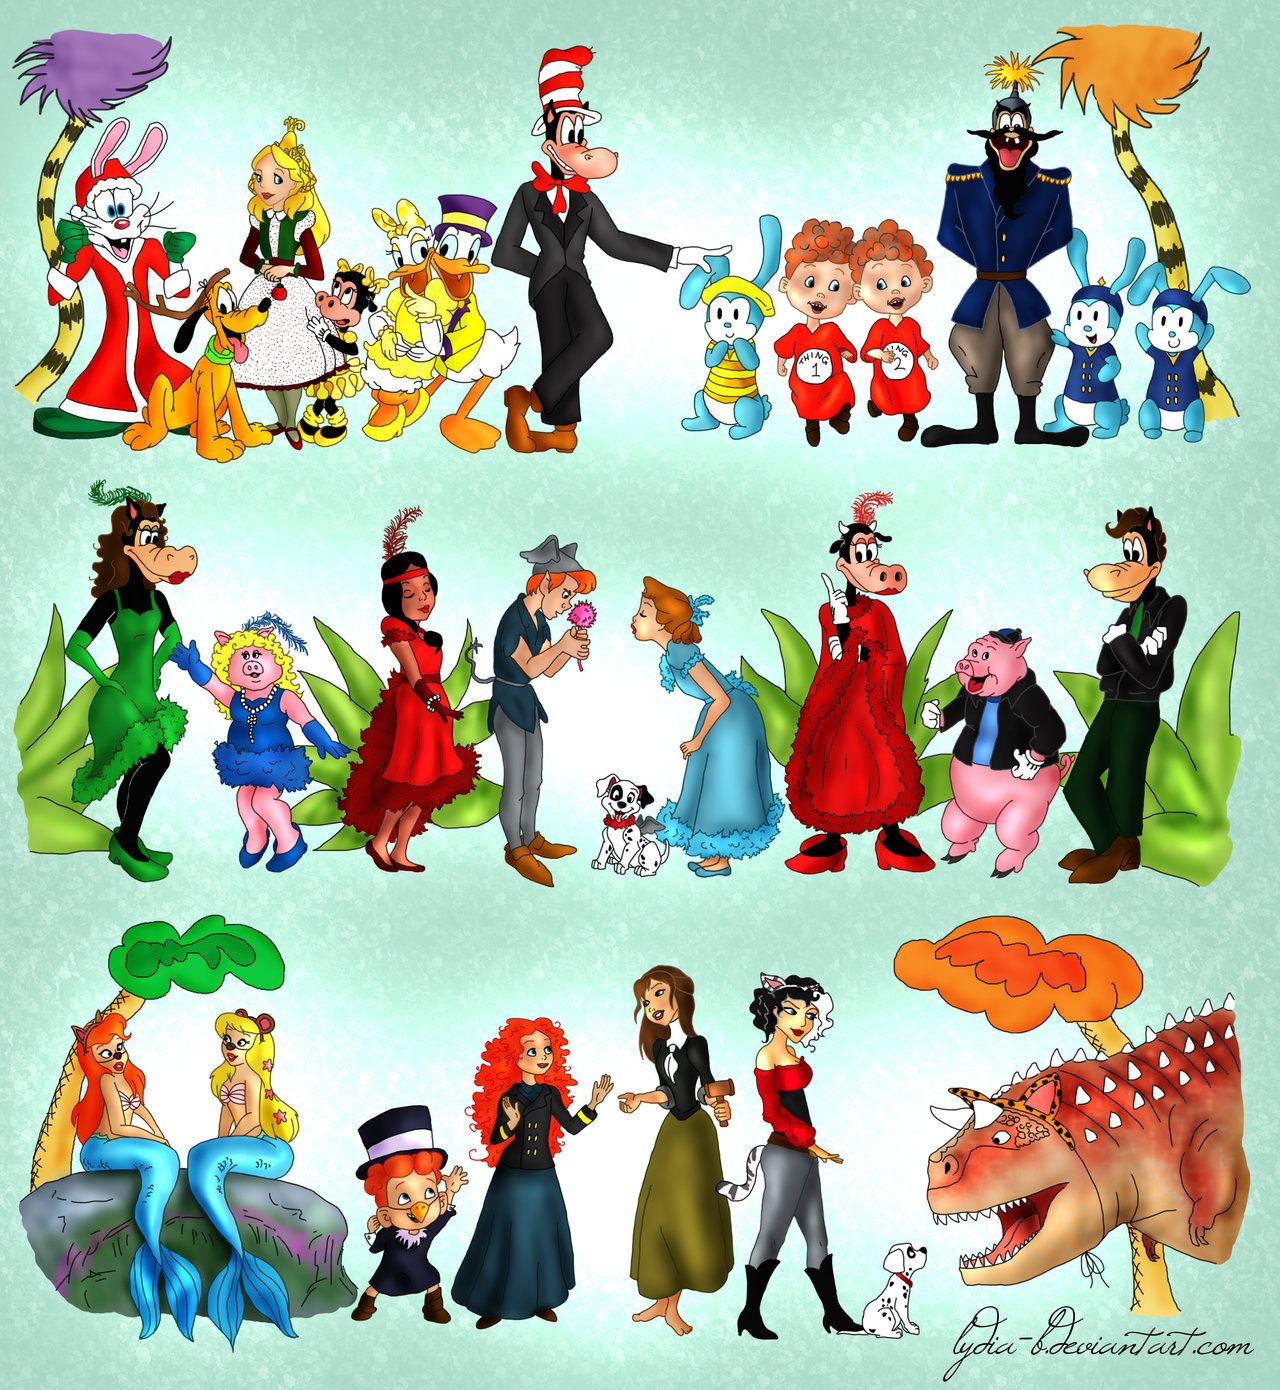 Disney characters as SEUSSICAL CHARACTERS!!! Cat in the